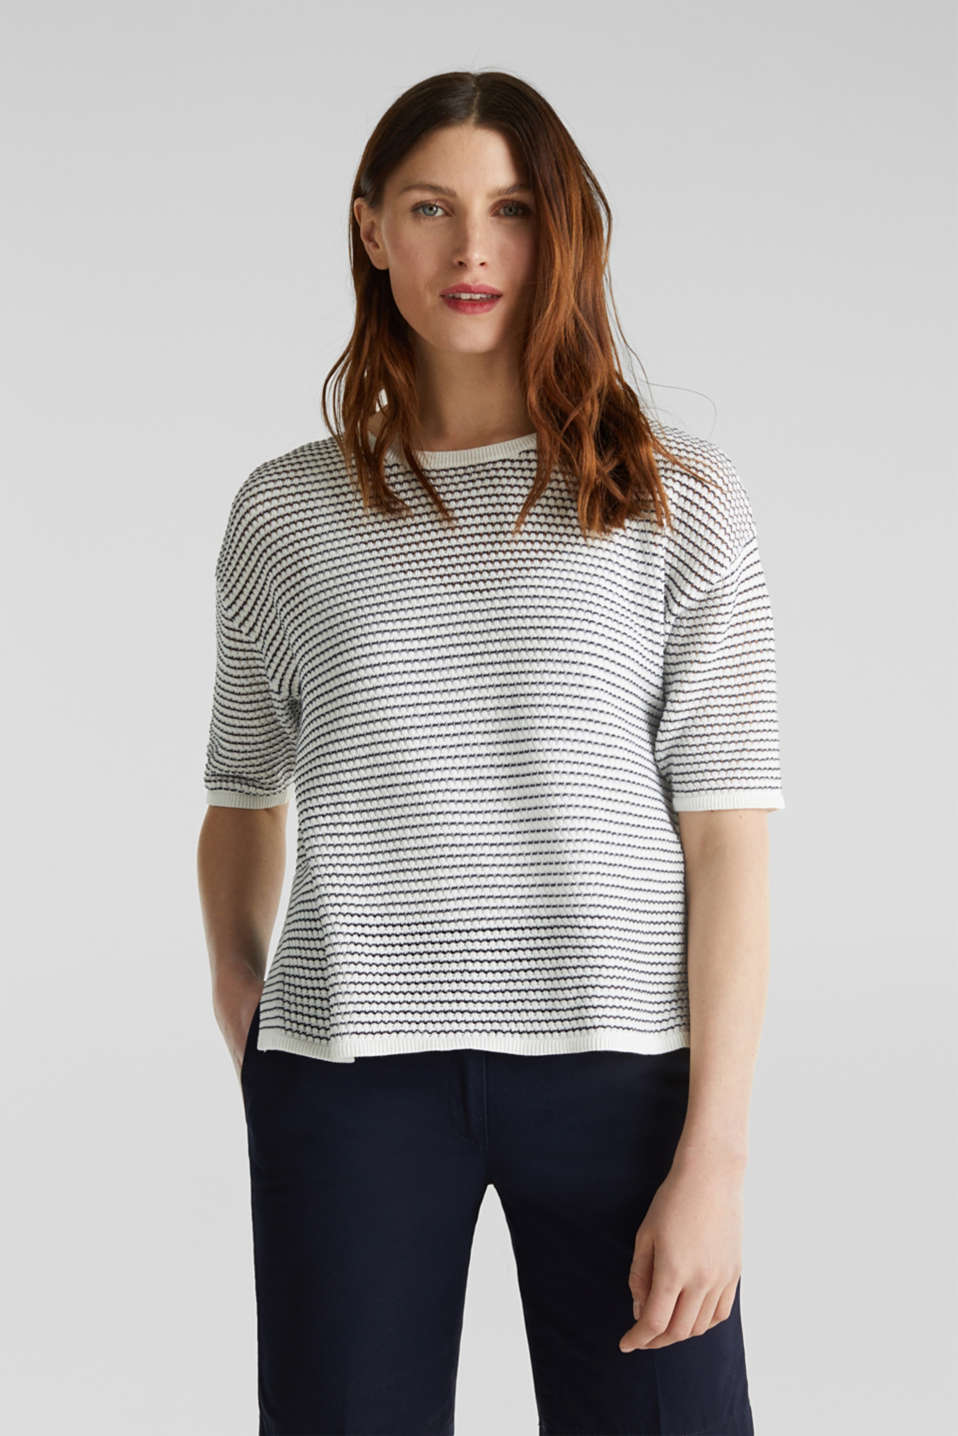 Esprit - Short-sleeved jumper, organic cotton